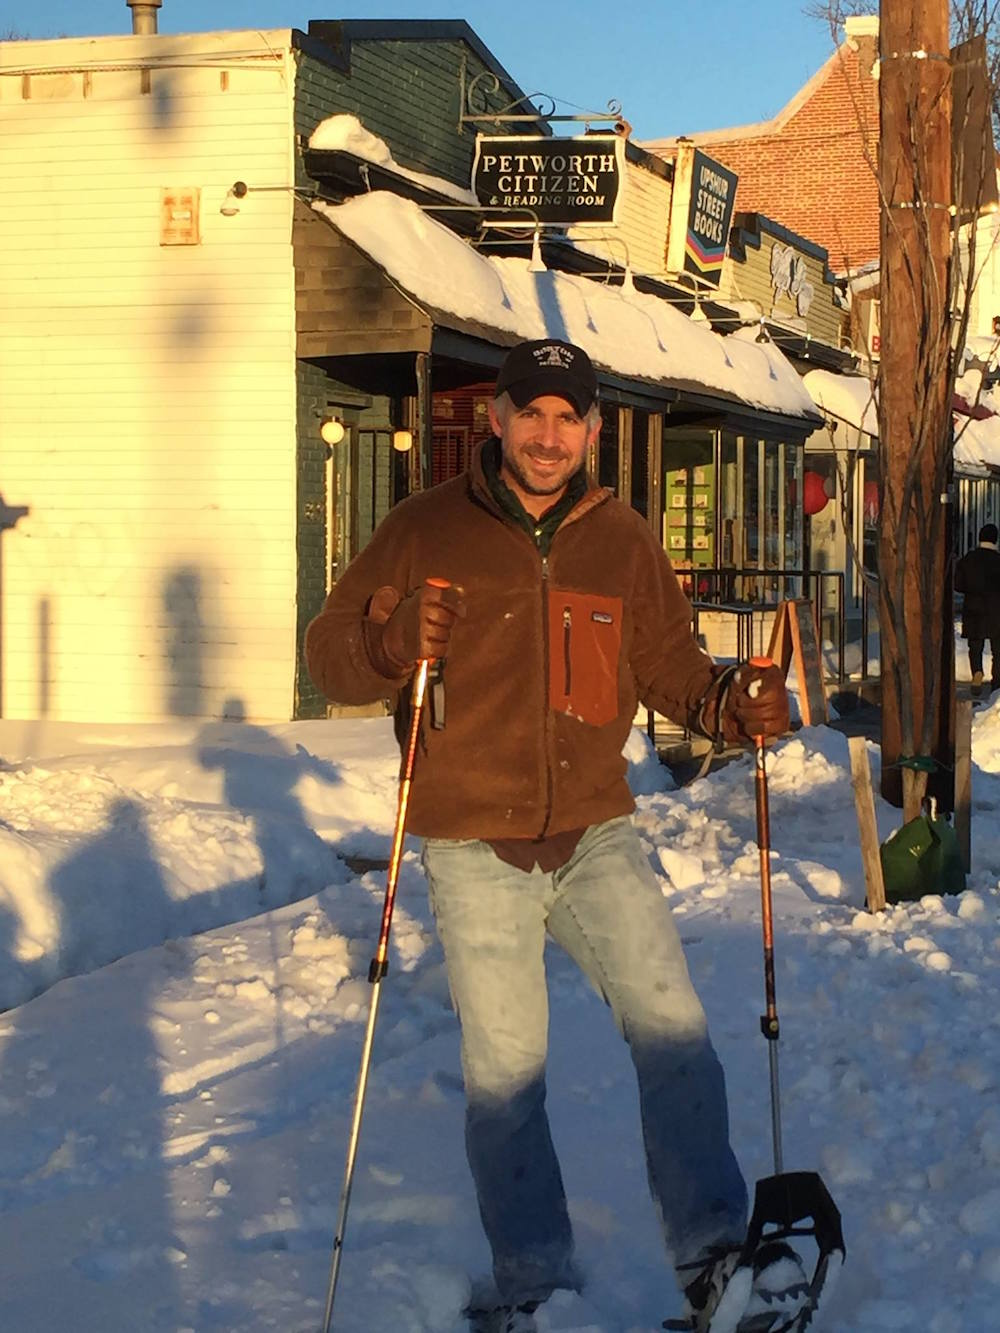 Adam Rosenberg snowshoes over from 14th Street to Petworth Citizen to enjoy a beer.